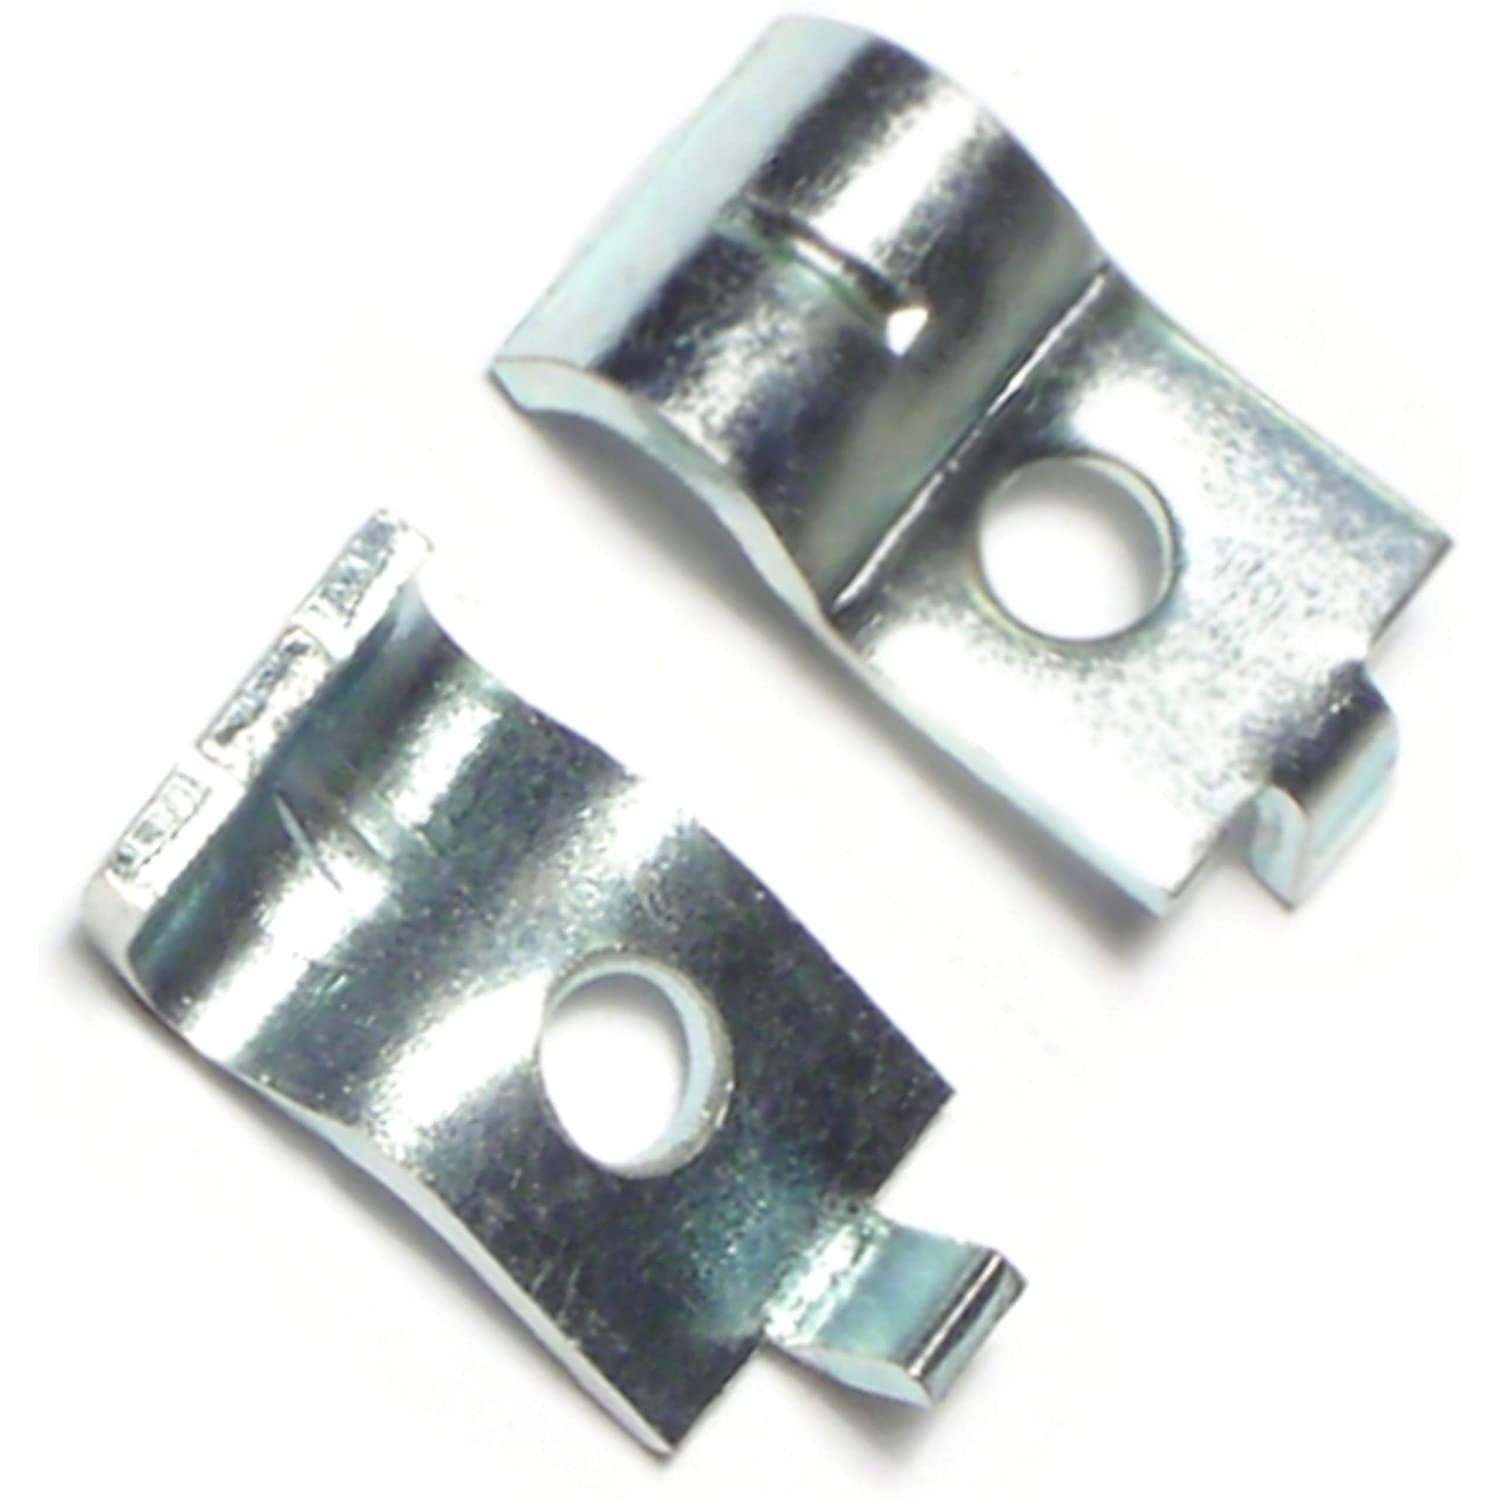 Piece-5 Hard-to-Find Fastener 014973146719 Conduit Clips